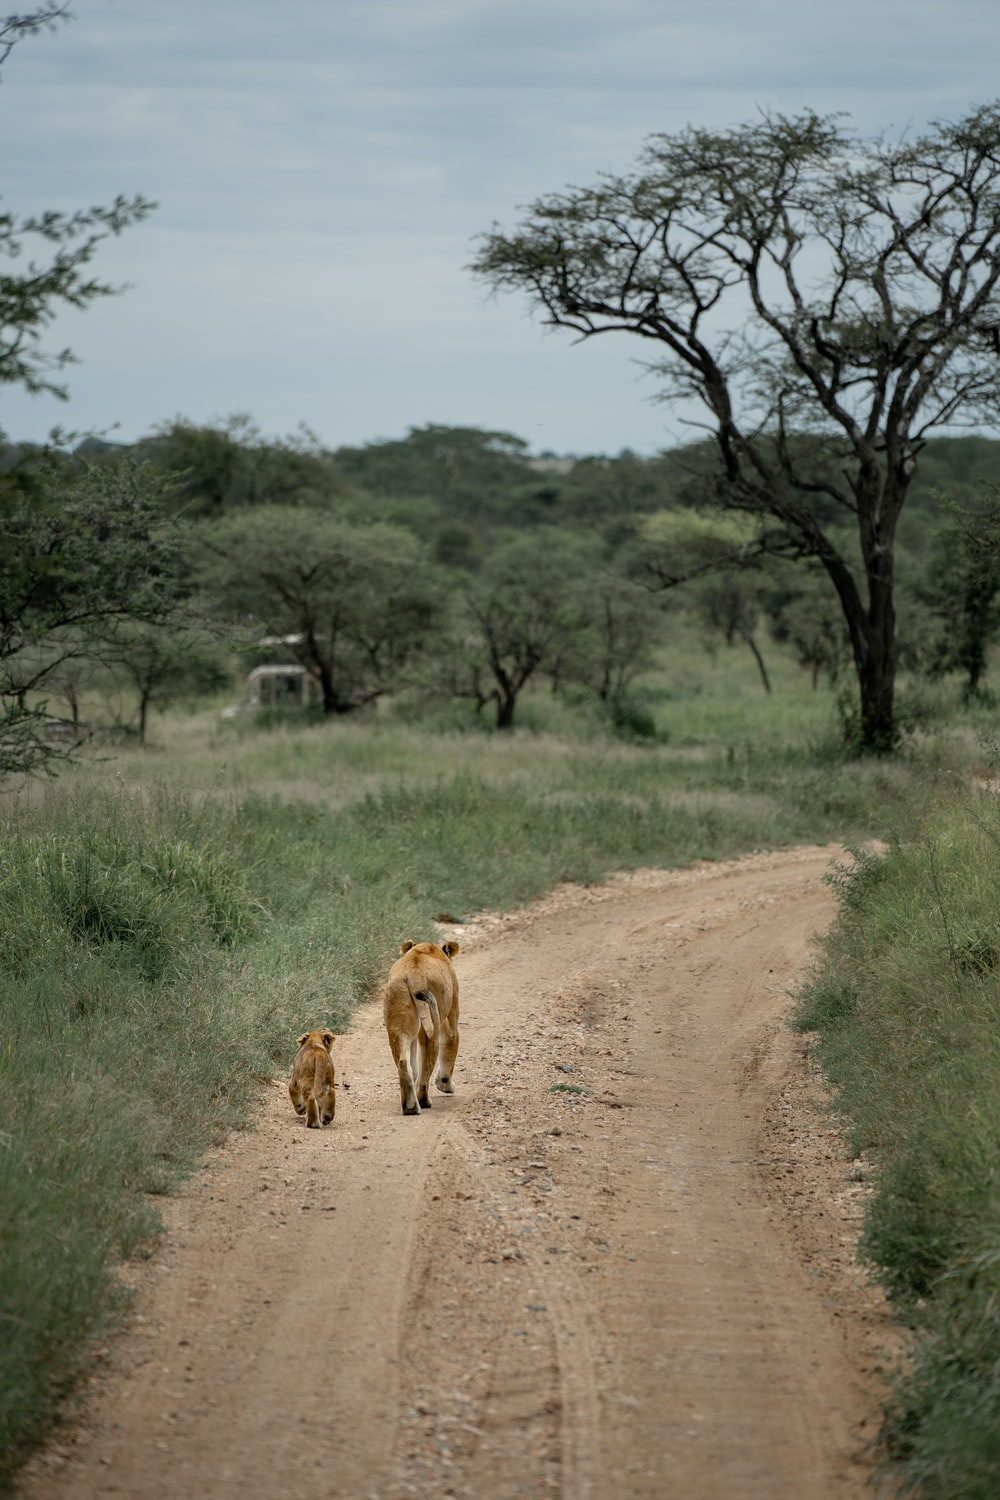 brown lioness walking on dirt road during daytime